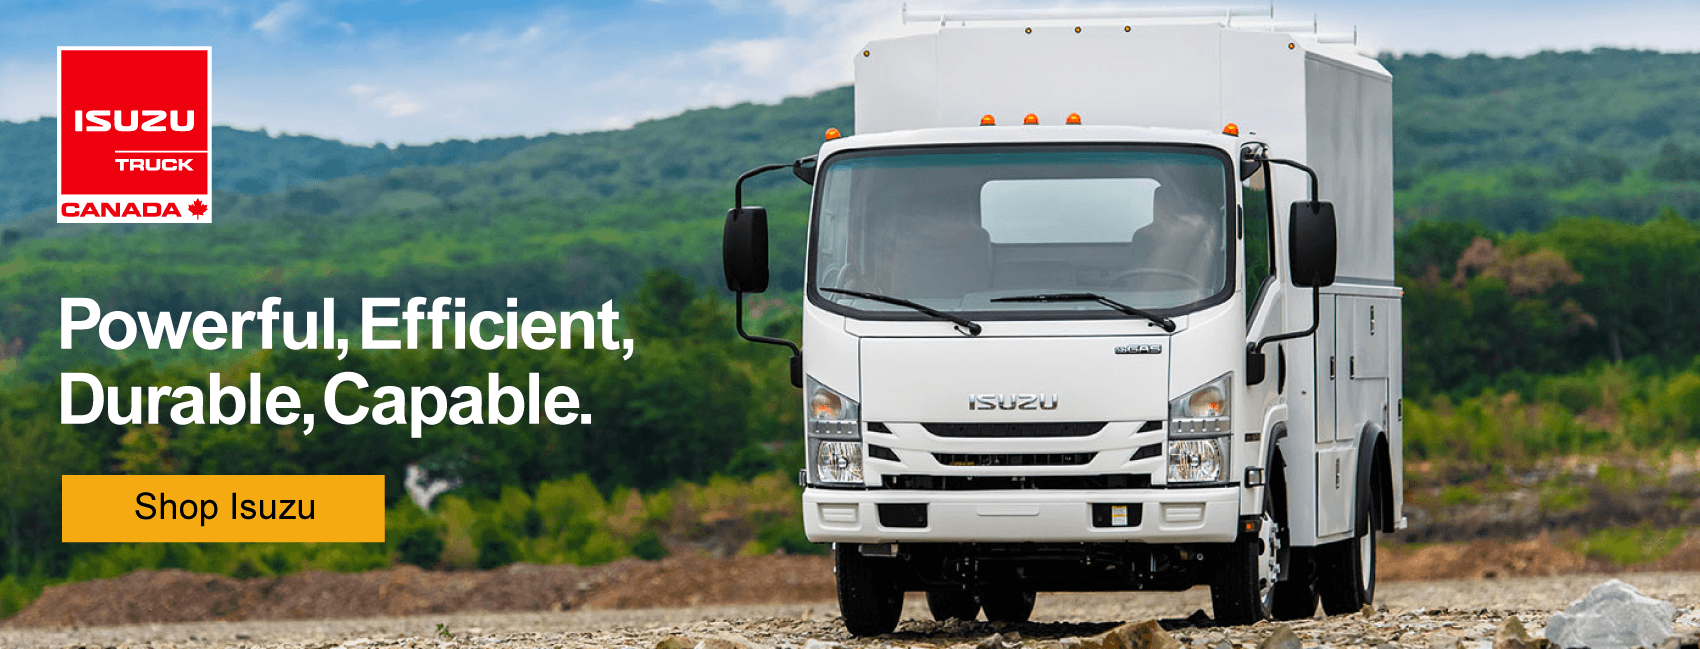 Humberview Isuzu commercial trucks heritage of dependability